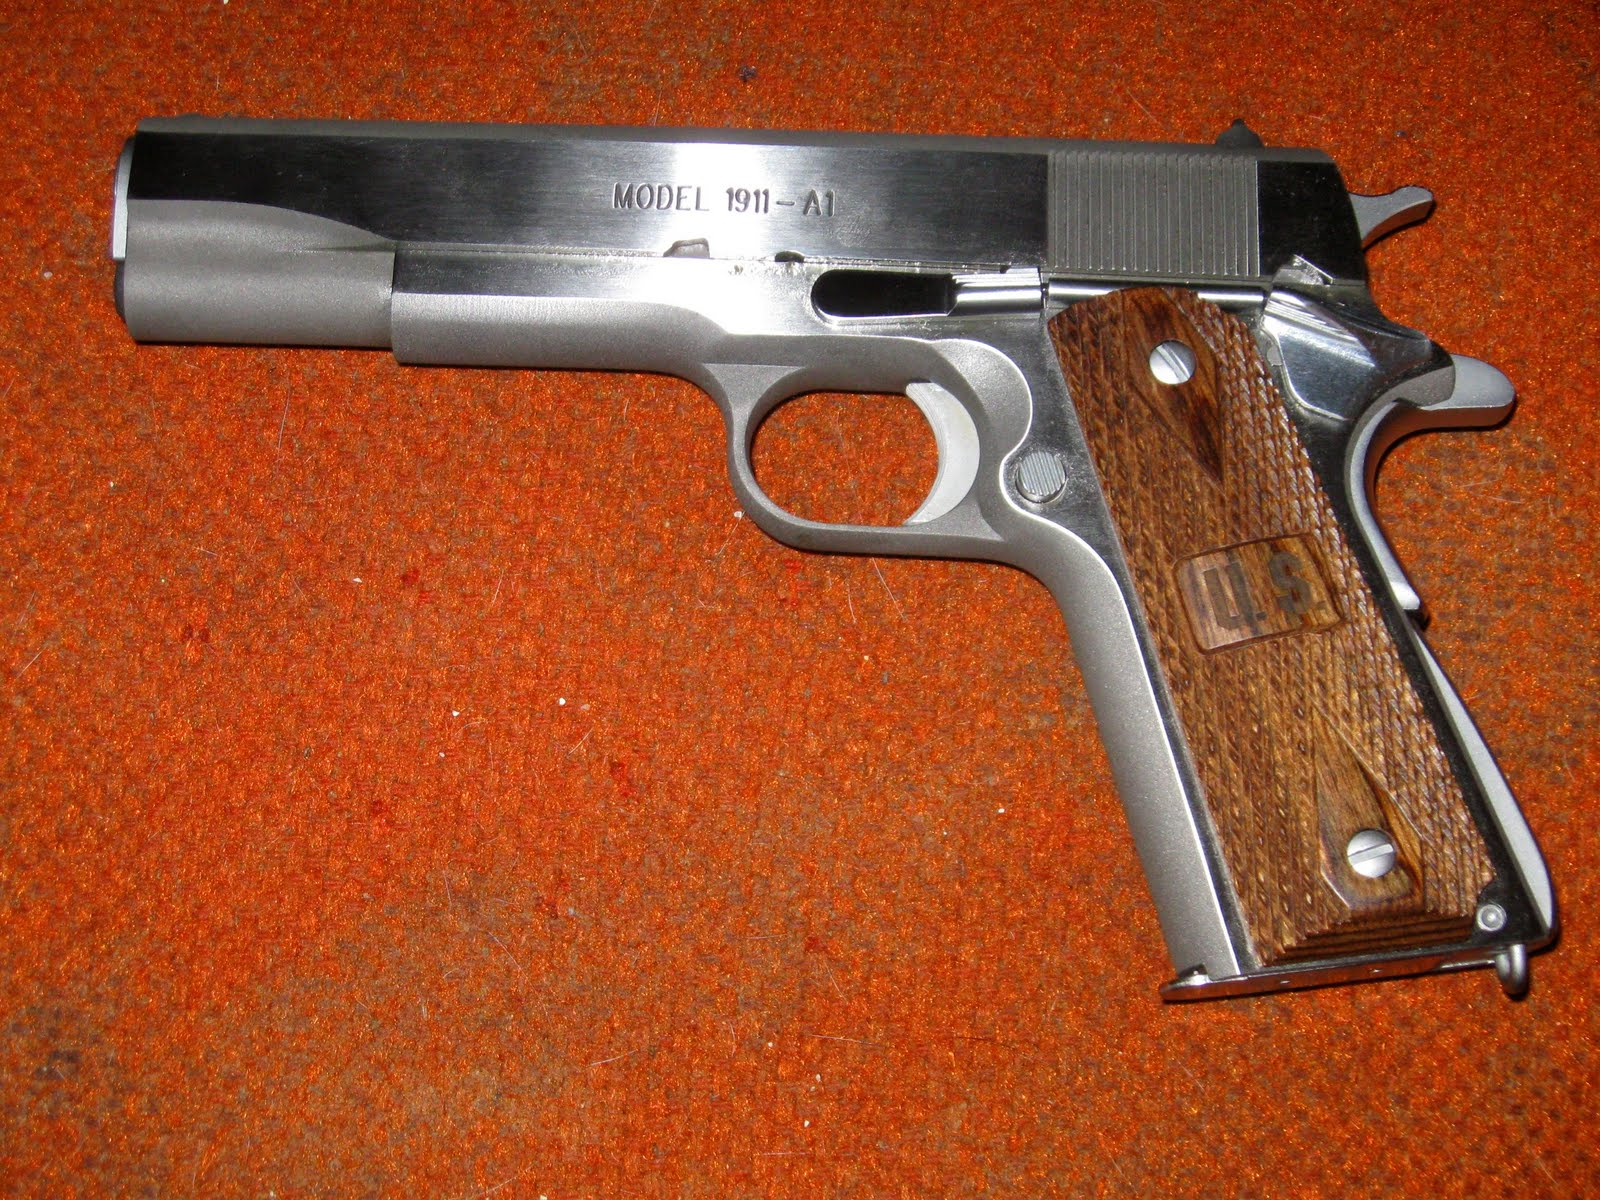 Your idea field strip springfield model 1911 true answer